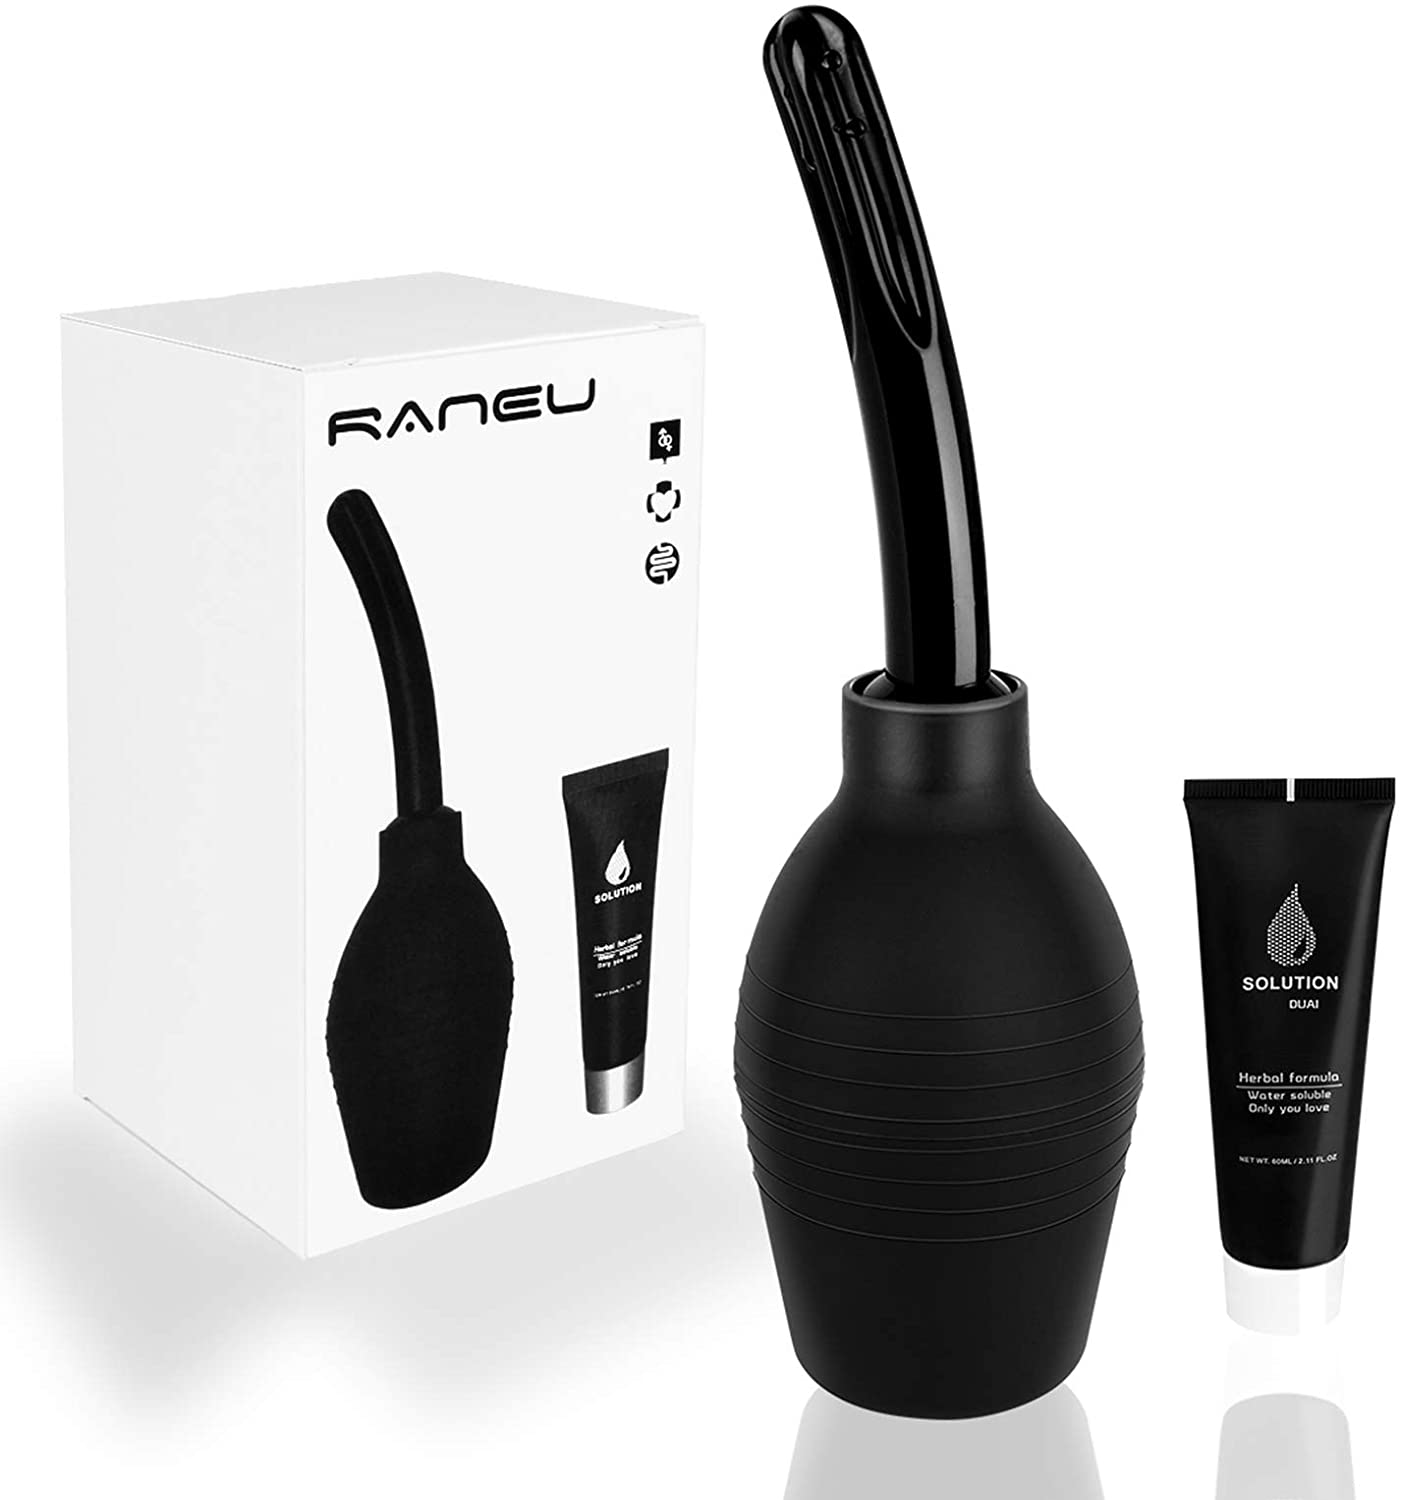 RANEU Enema Bulb Kit with Lube, Anal Douche Superior Materials Douche for Men Women Made of Comfortable Silicone: Health & Personal Care